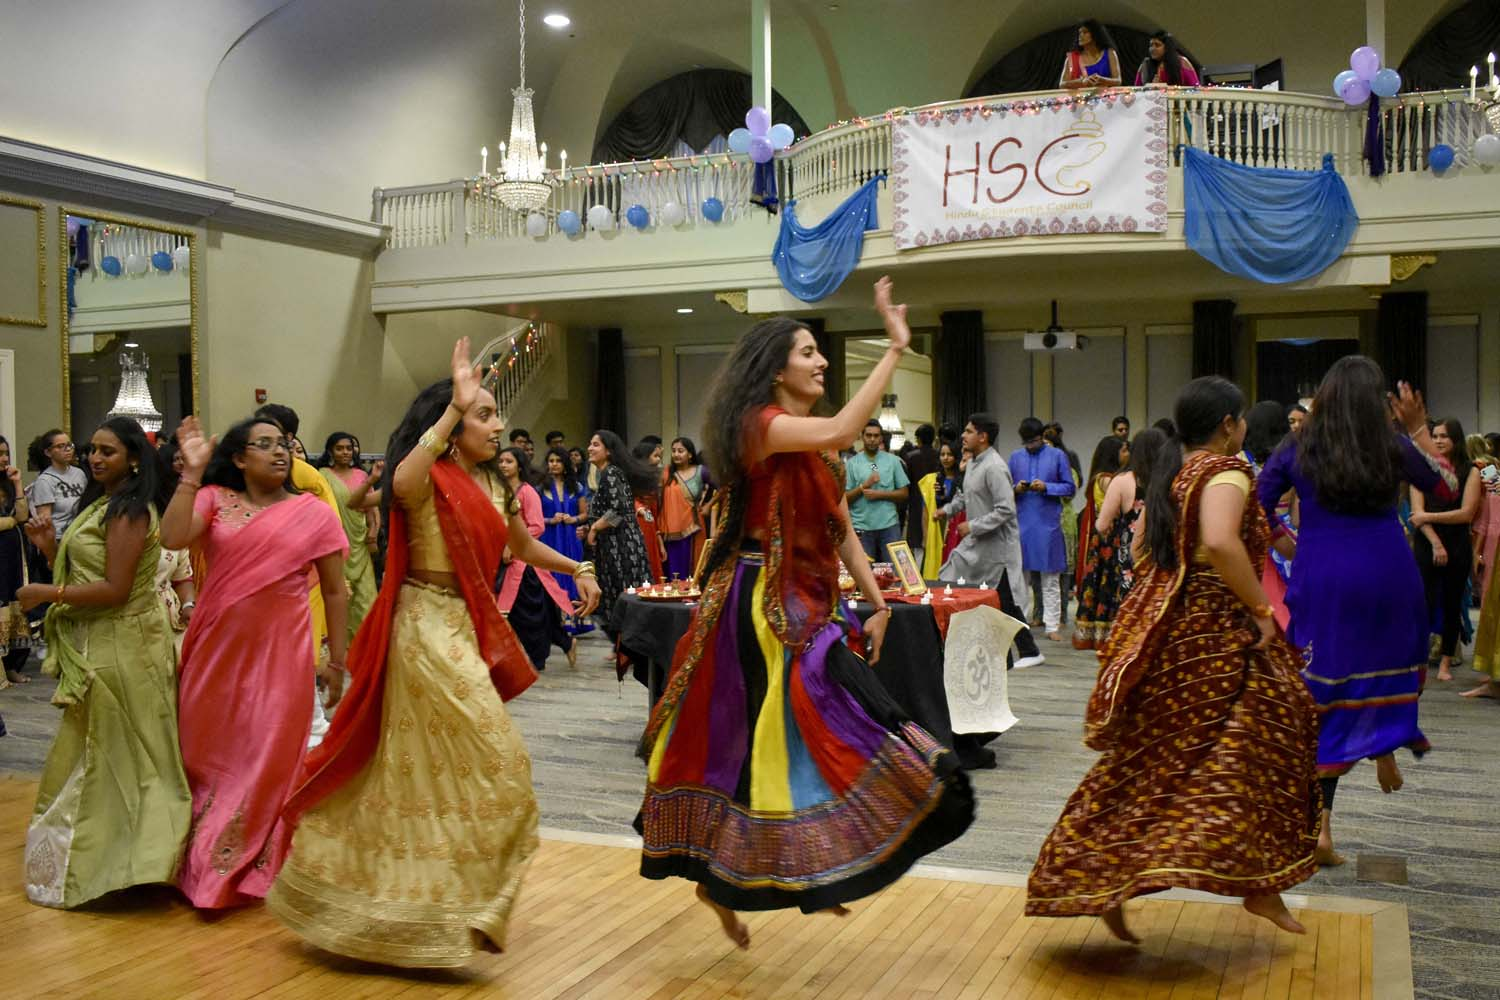 Participants dance in circles in the O'Hara Student Center ballroom during the Hindu Students Council's Navaratri celebration.